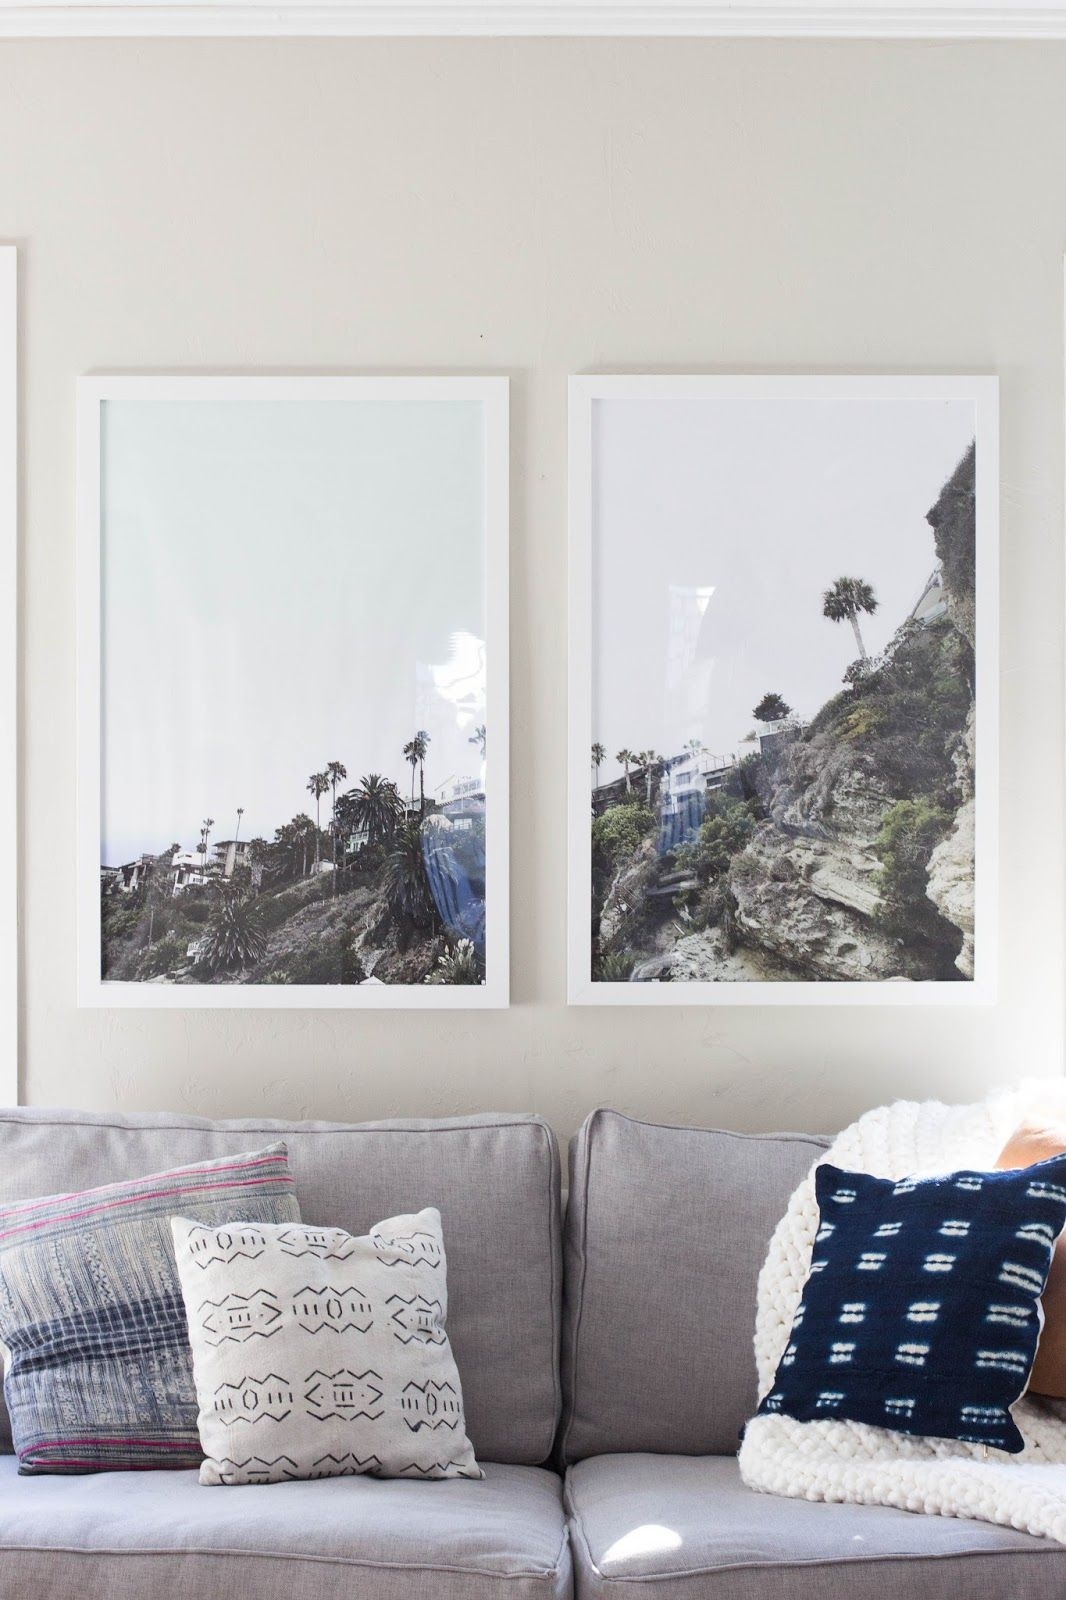 How to print and frame giant photos for less than 20 printing how to print and frame giant photos for less than 20 diy wall artdiy solutioingenieria Choice Image